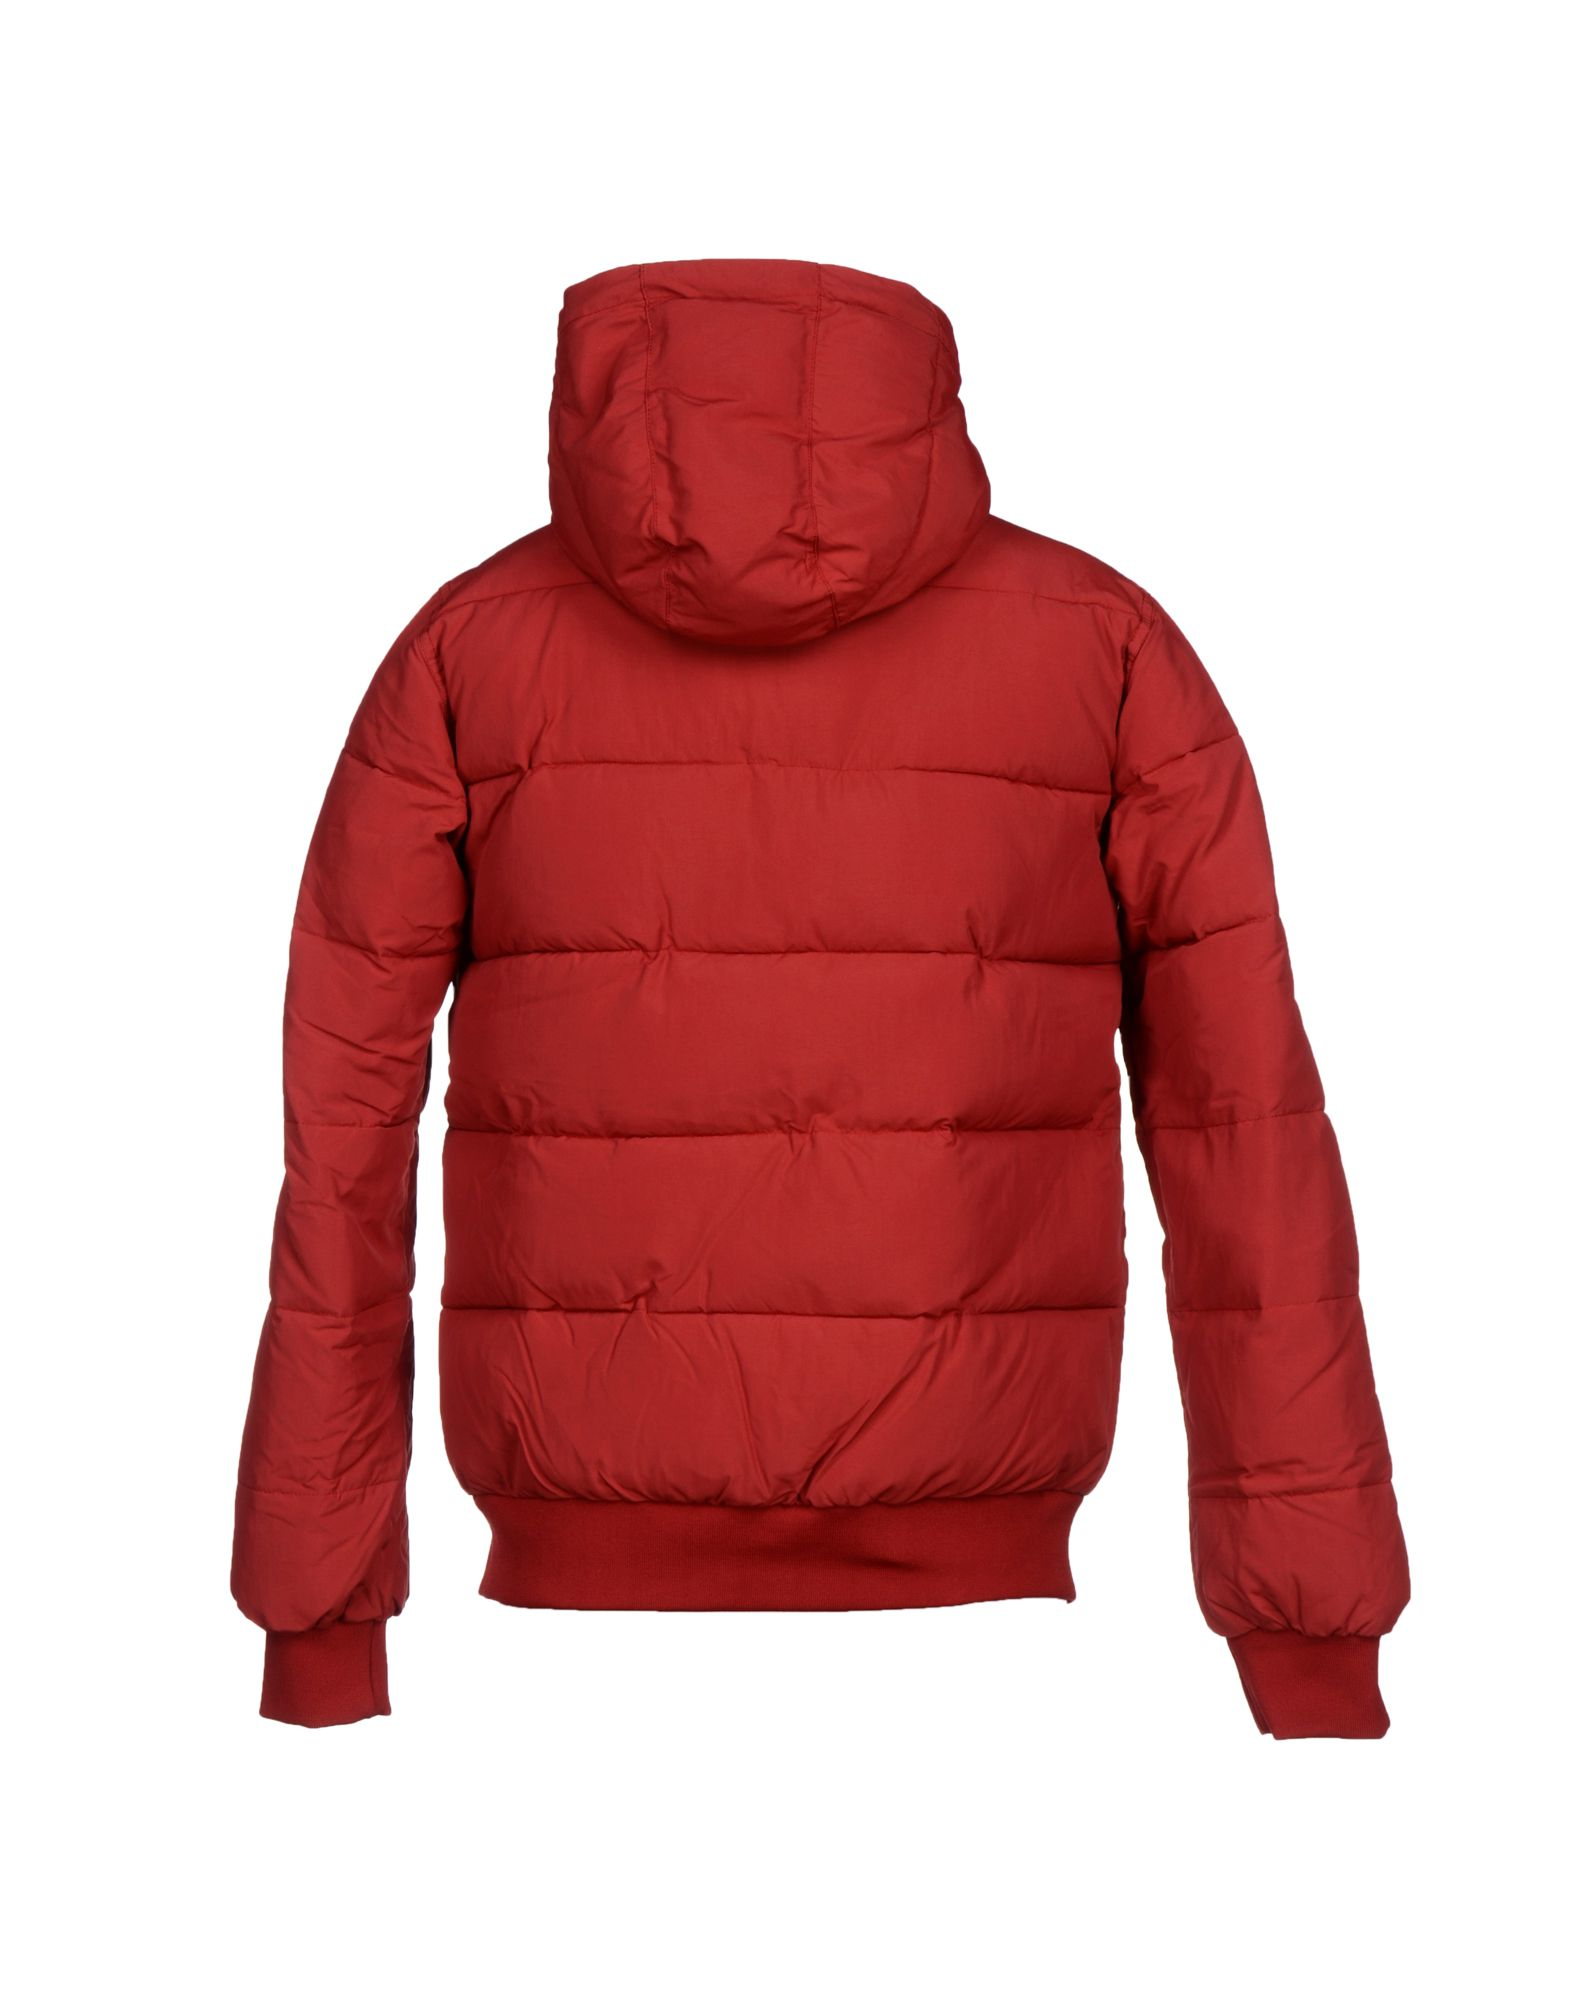 single men in red jacket Rich red or sapphire blue keeps the outfit elegant without appearing too nighttime like heavy black  men's dating advice  how to rock the velvet jacket with style.